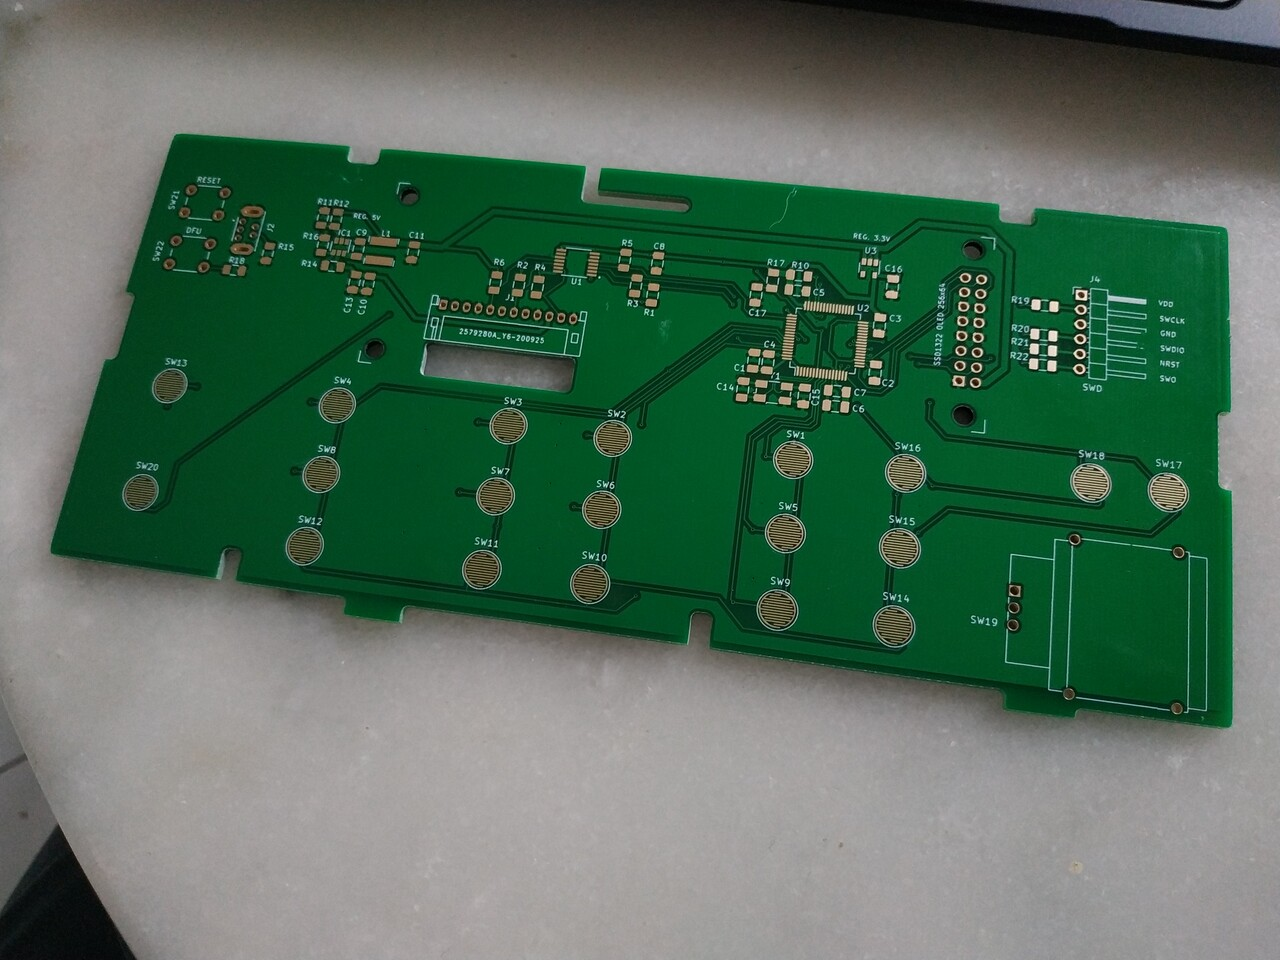 the PCB for a replacement front panel for the HP 34970A